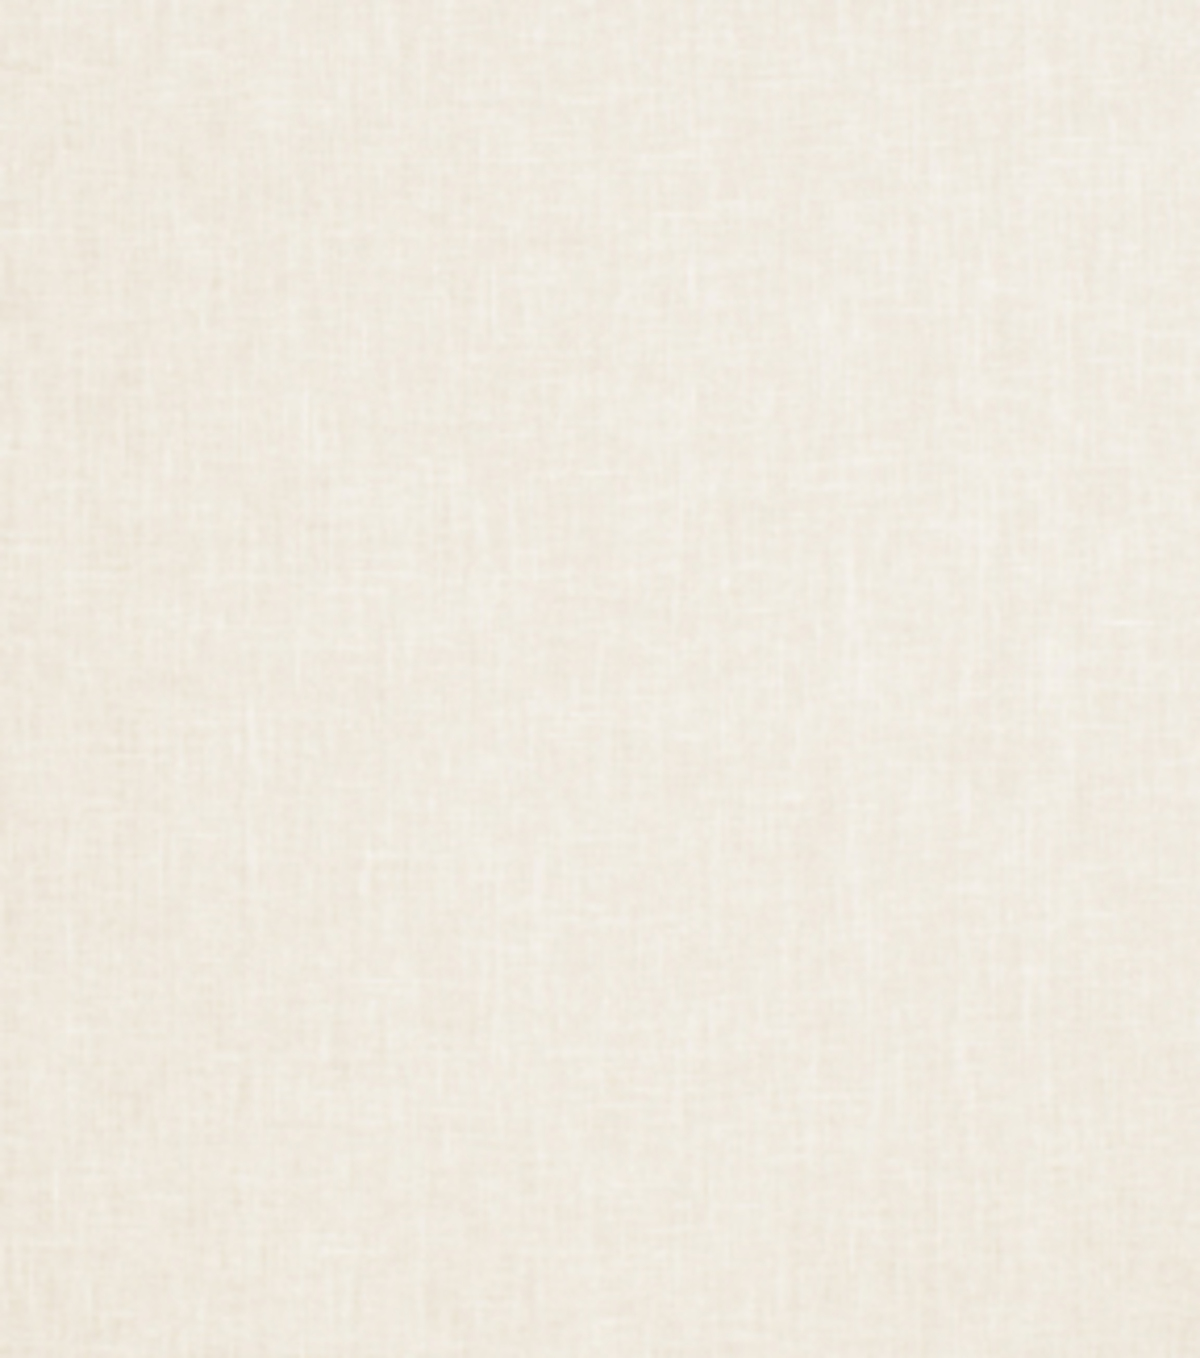 Home Decor 8\u0022x8\u0022 Fabric Swatch-Eaton Square Bannister Ivory